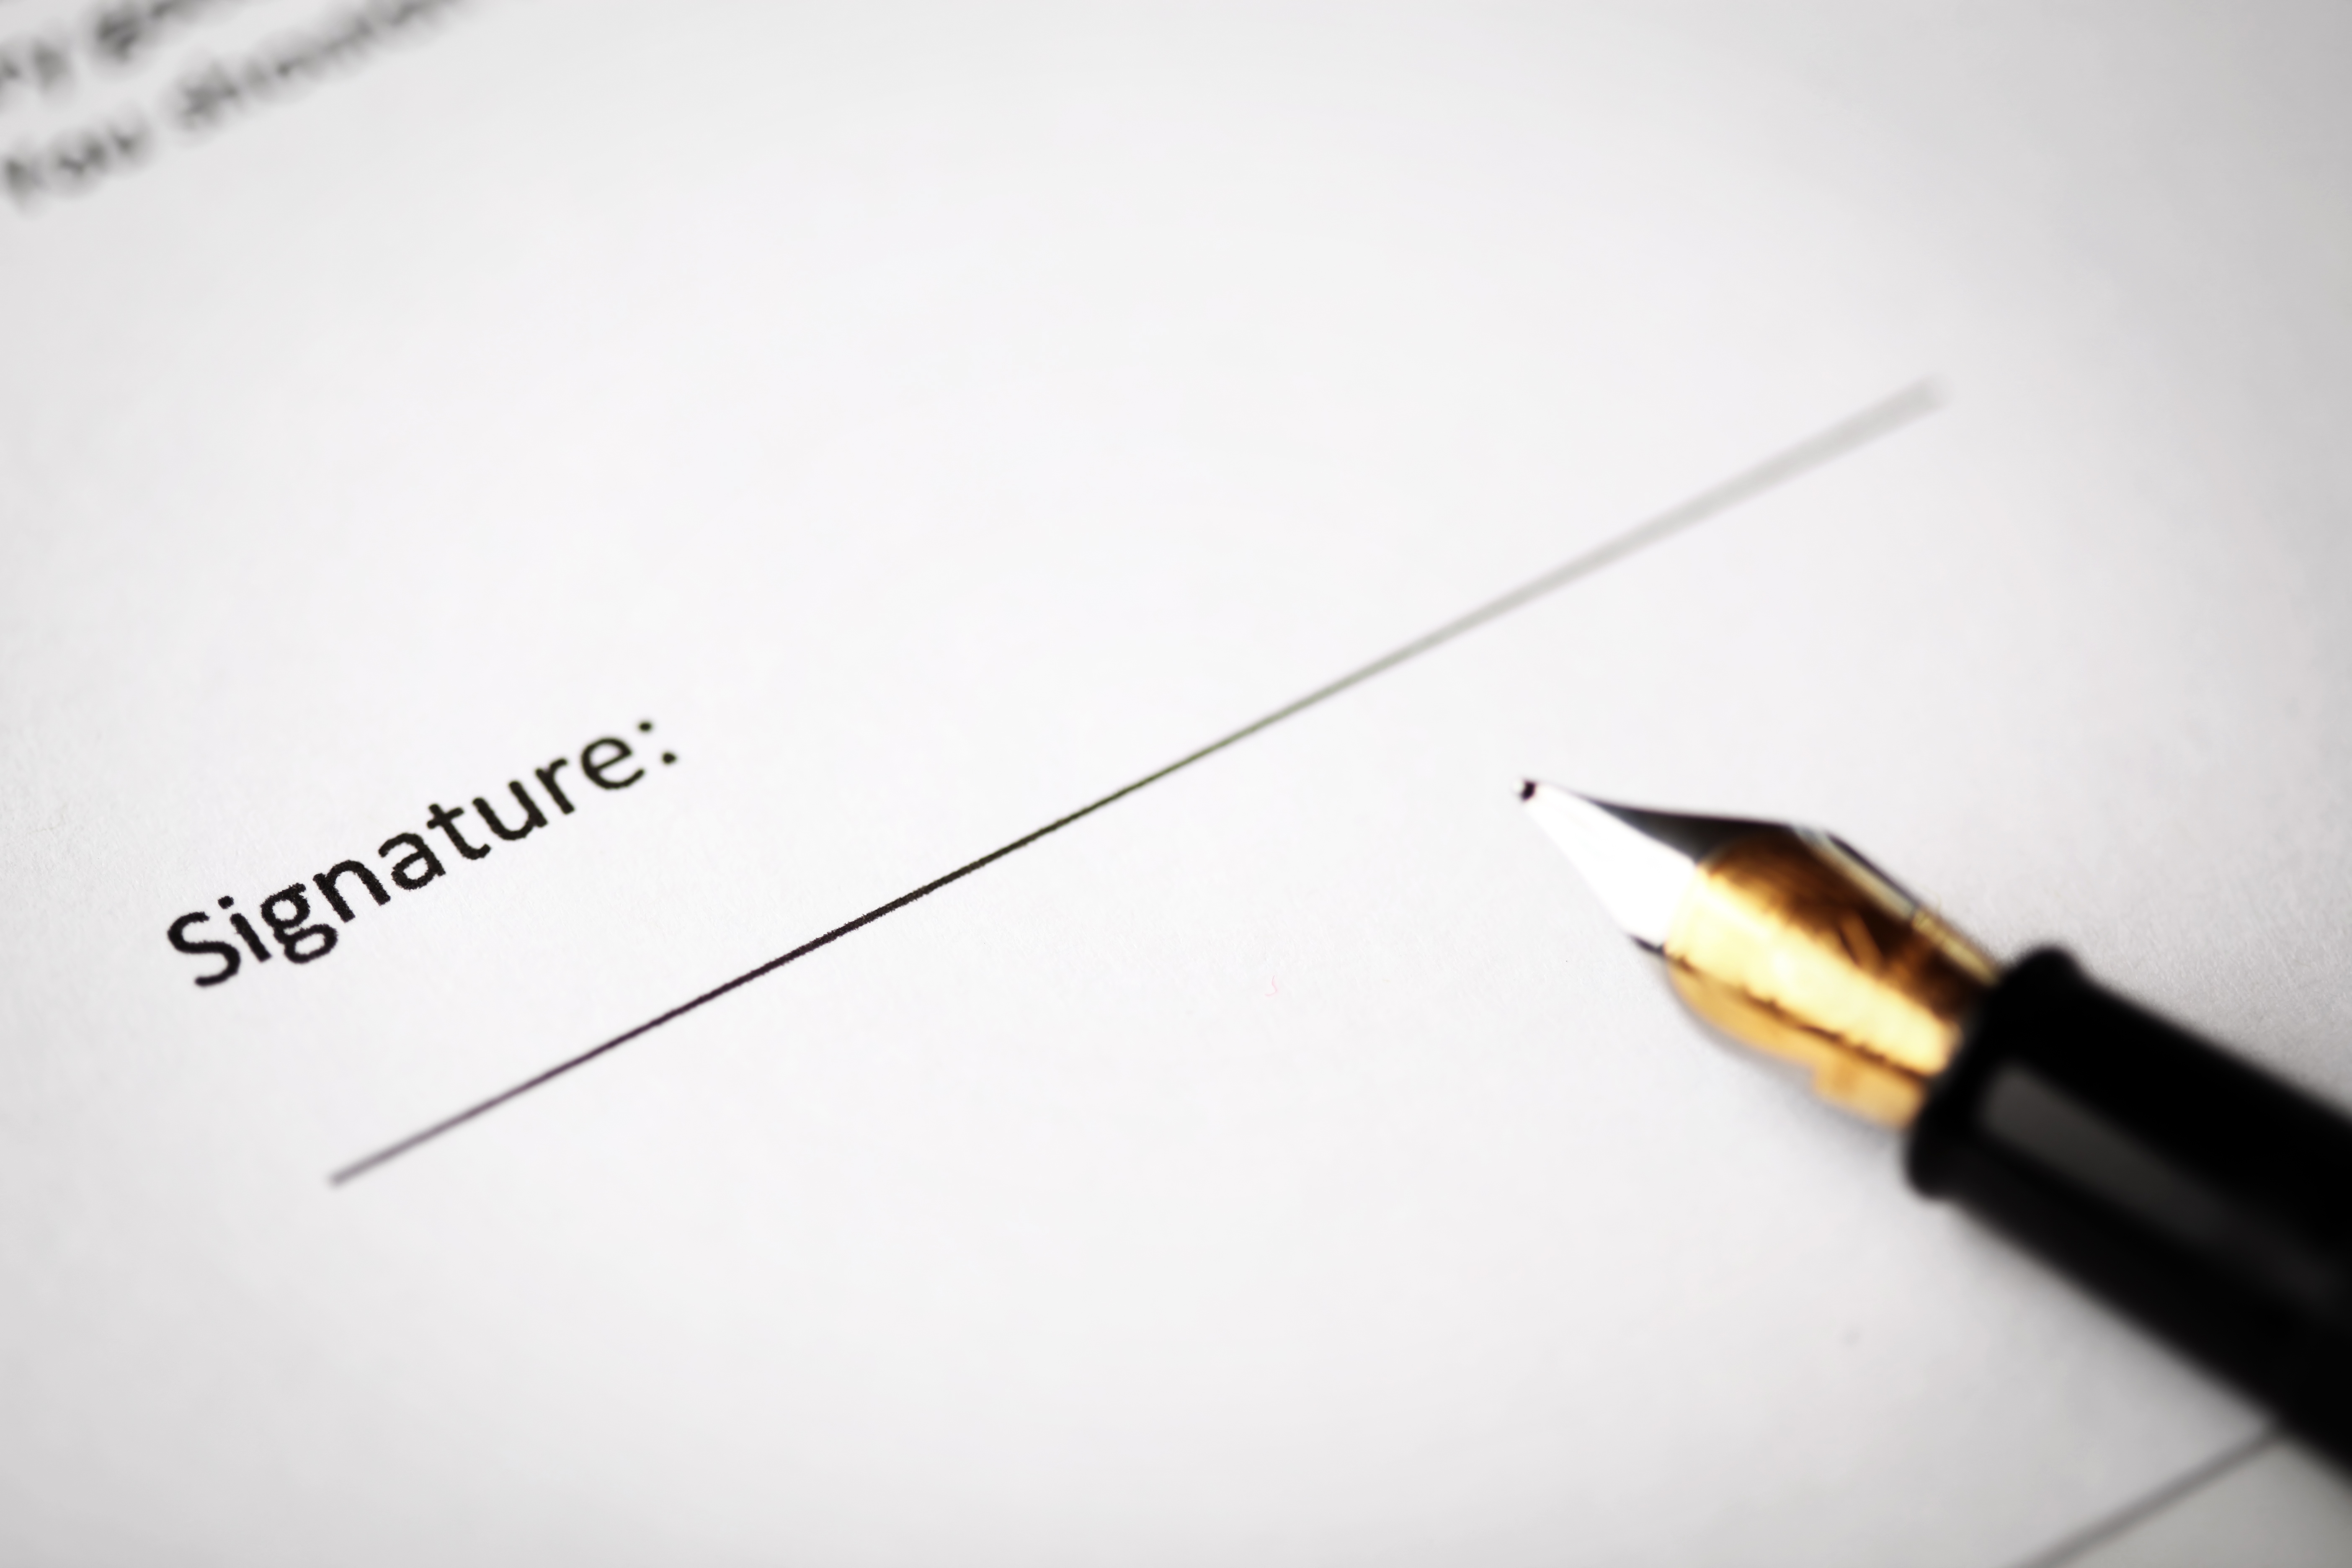 Write Any Legal Document Contracts Tenancy Agreements By Abdul - Signing legal documents